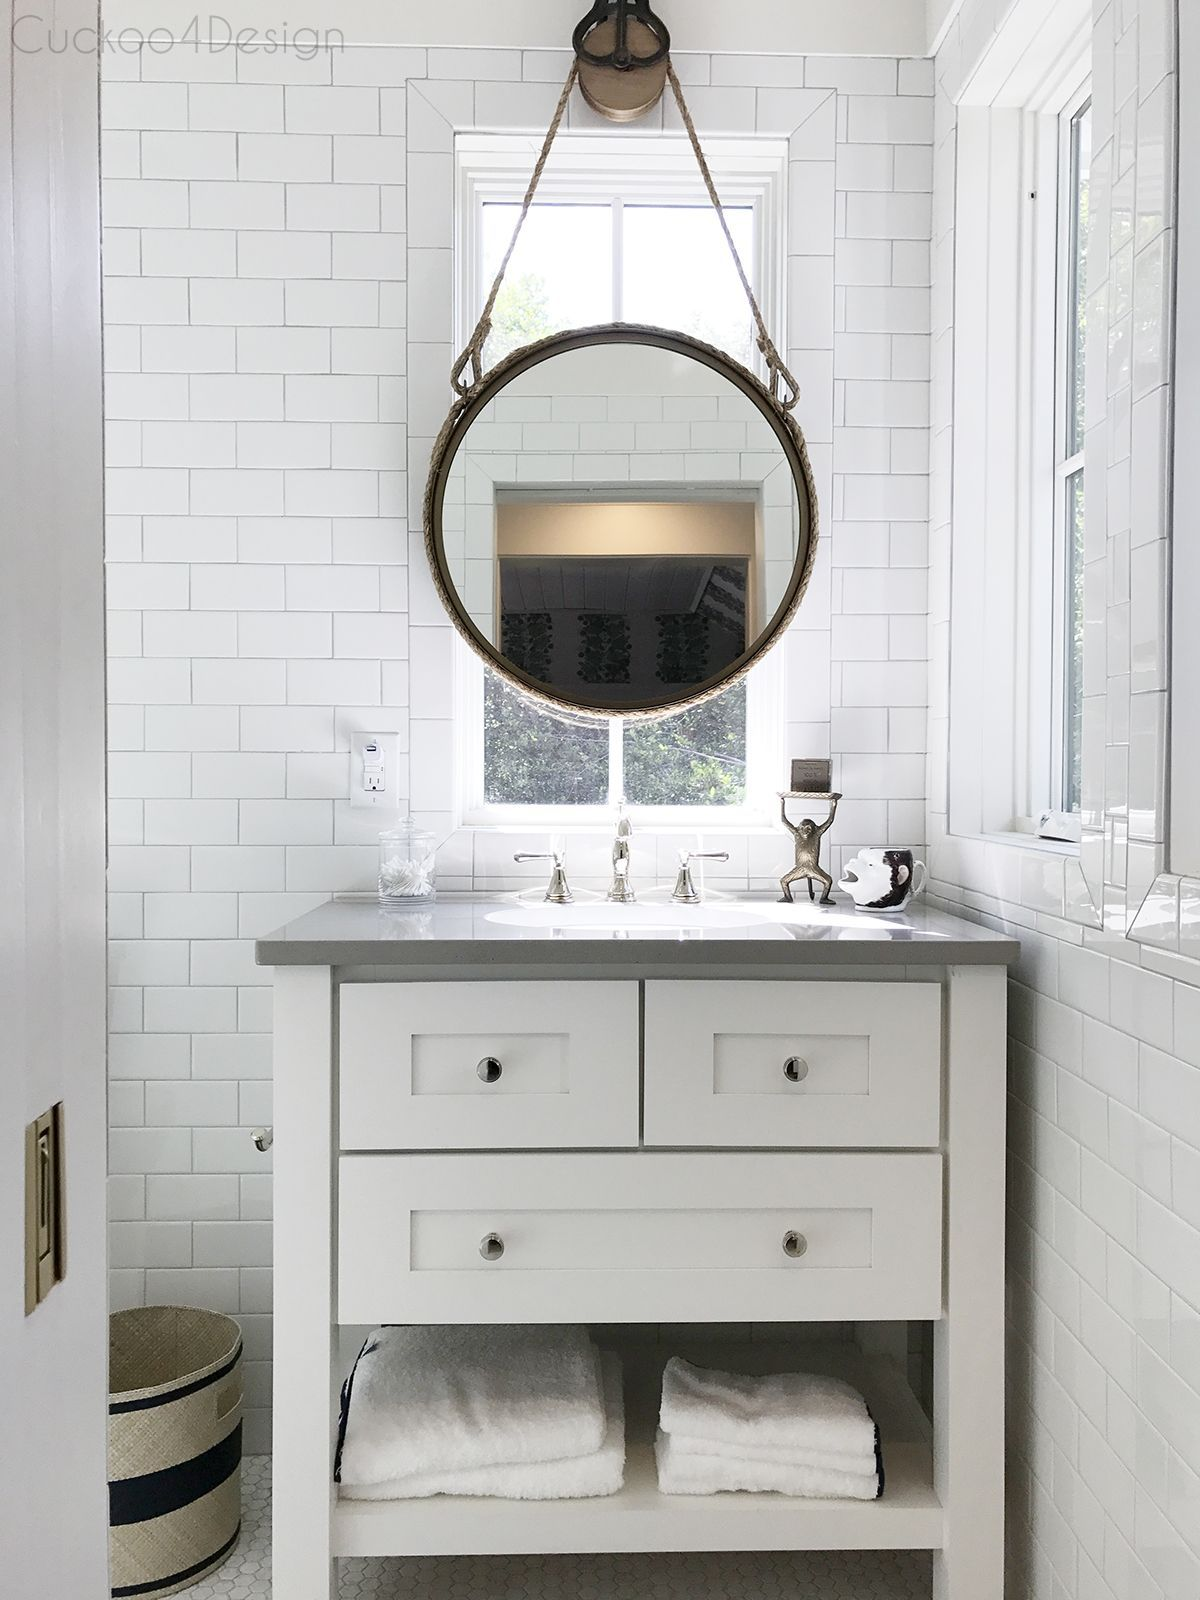 Pulley and rope bathroom vanity mirror mounting idea for in front of